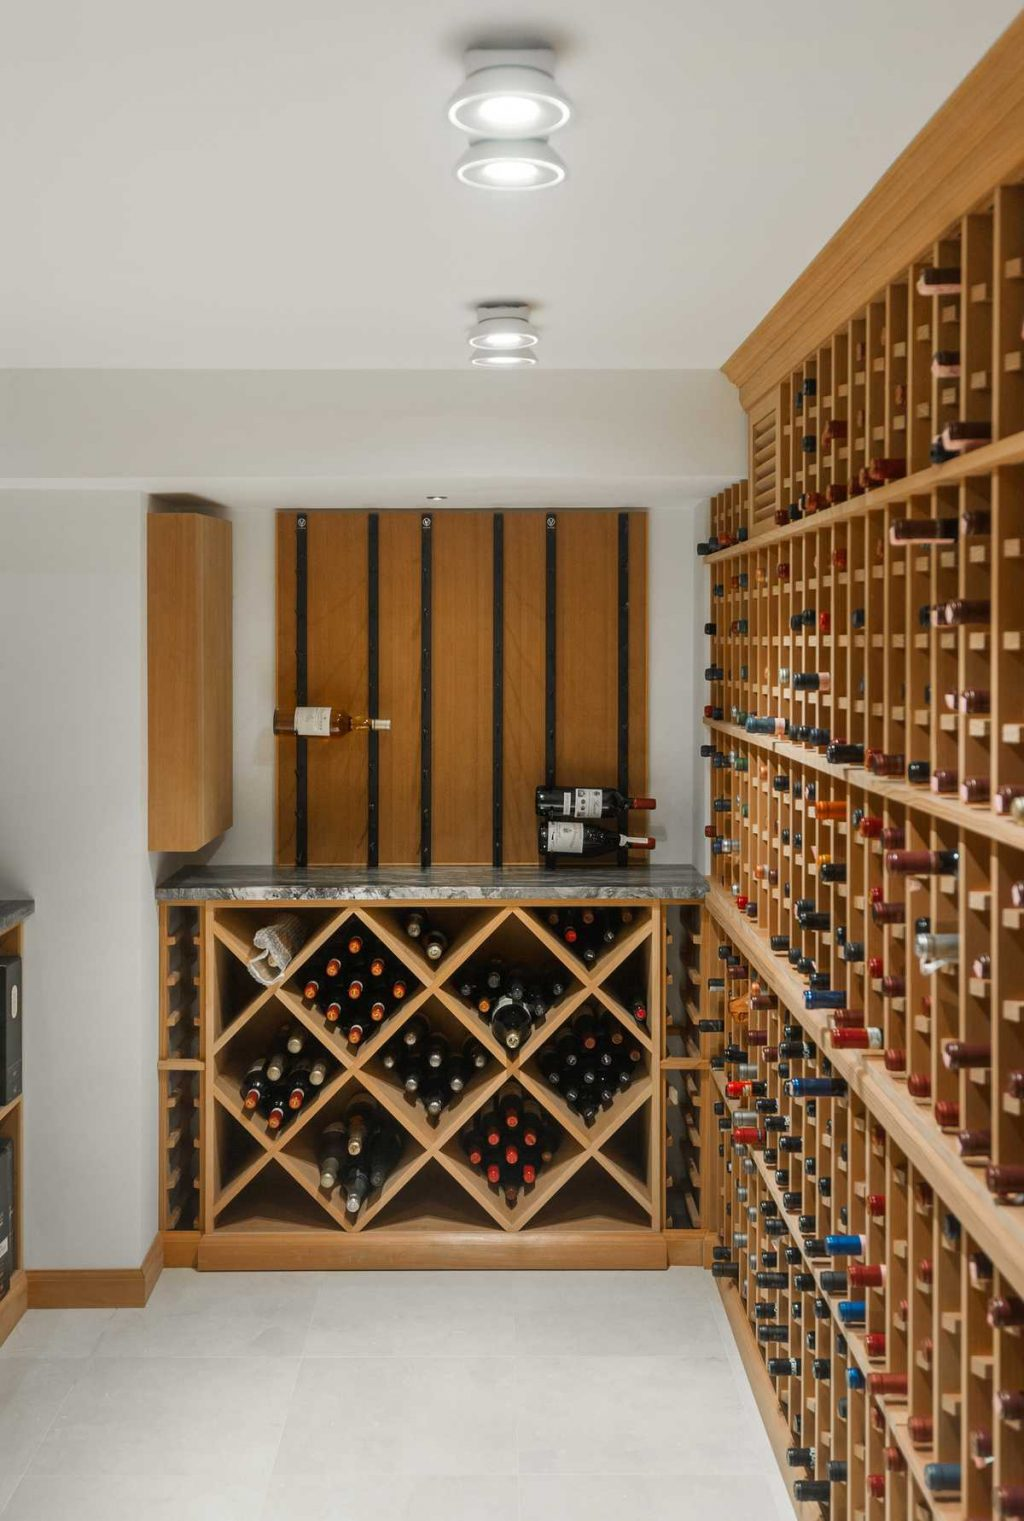 How to Store Wine in Your Home